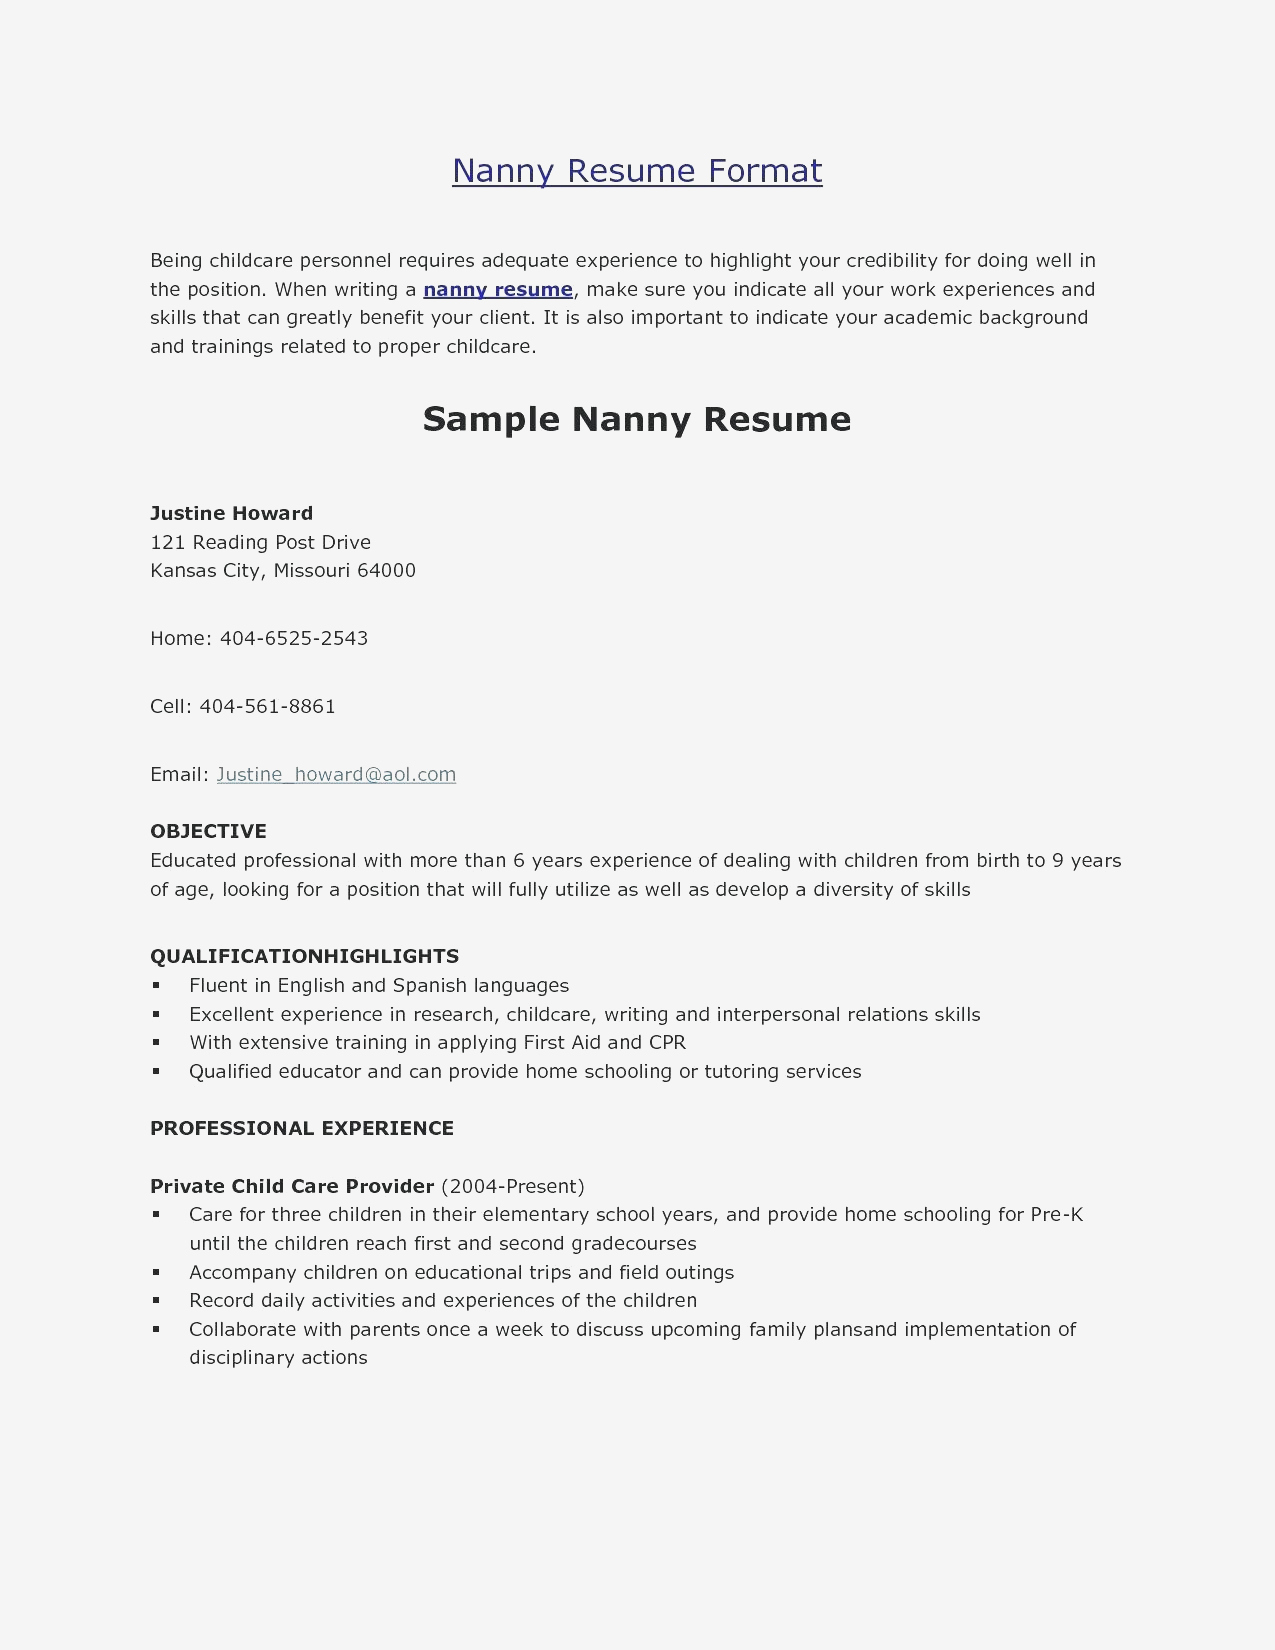 Clerical Resume Template - Clerical Resume Samples